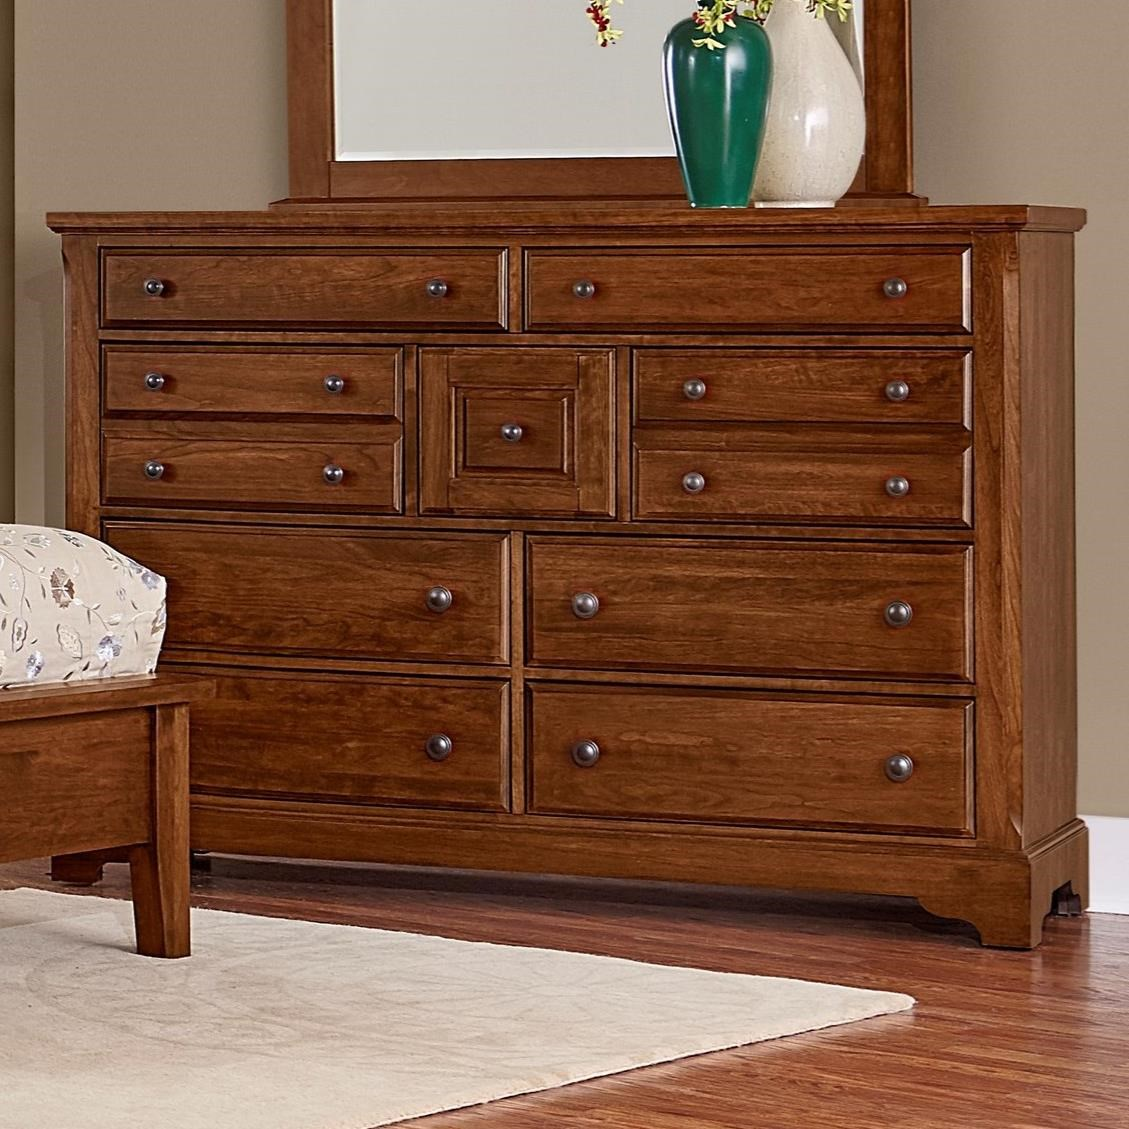 Artisan Choices Villa Triple Dresser - 9 Drawers by Artisan & Post at Crowley Furniture & Mattress